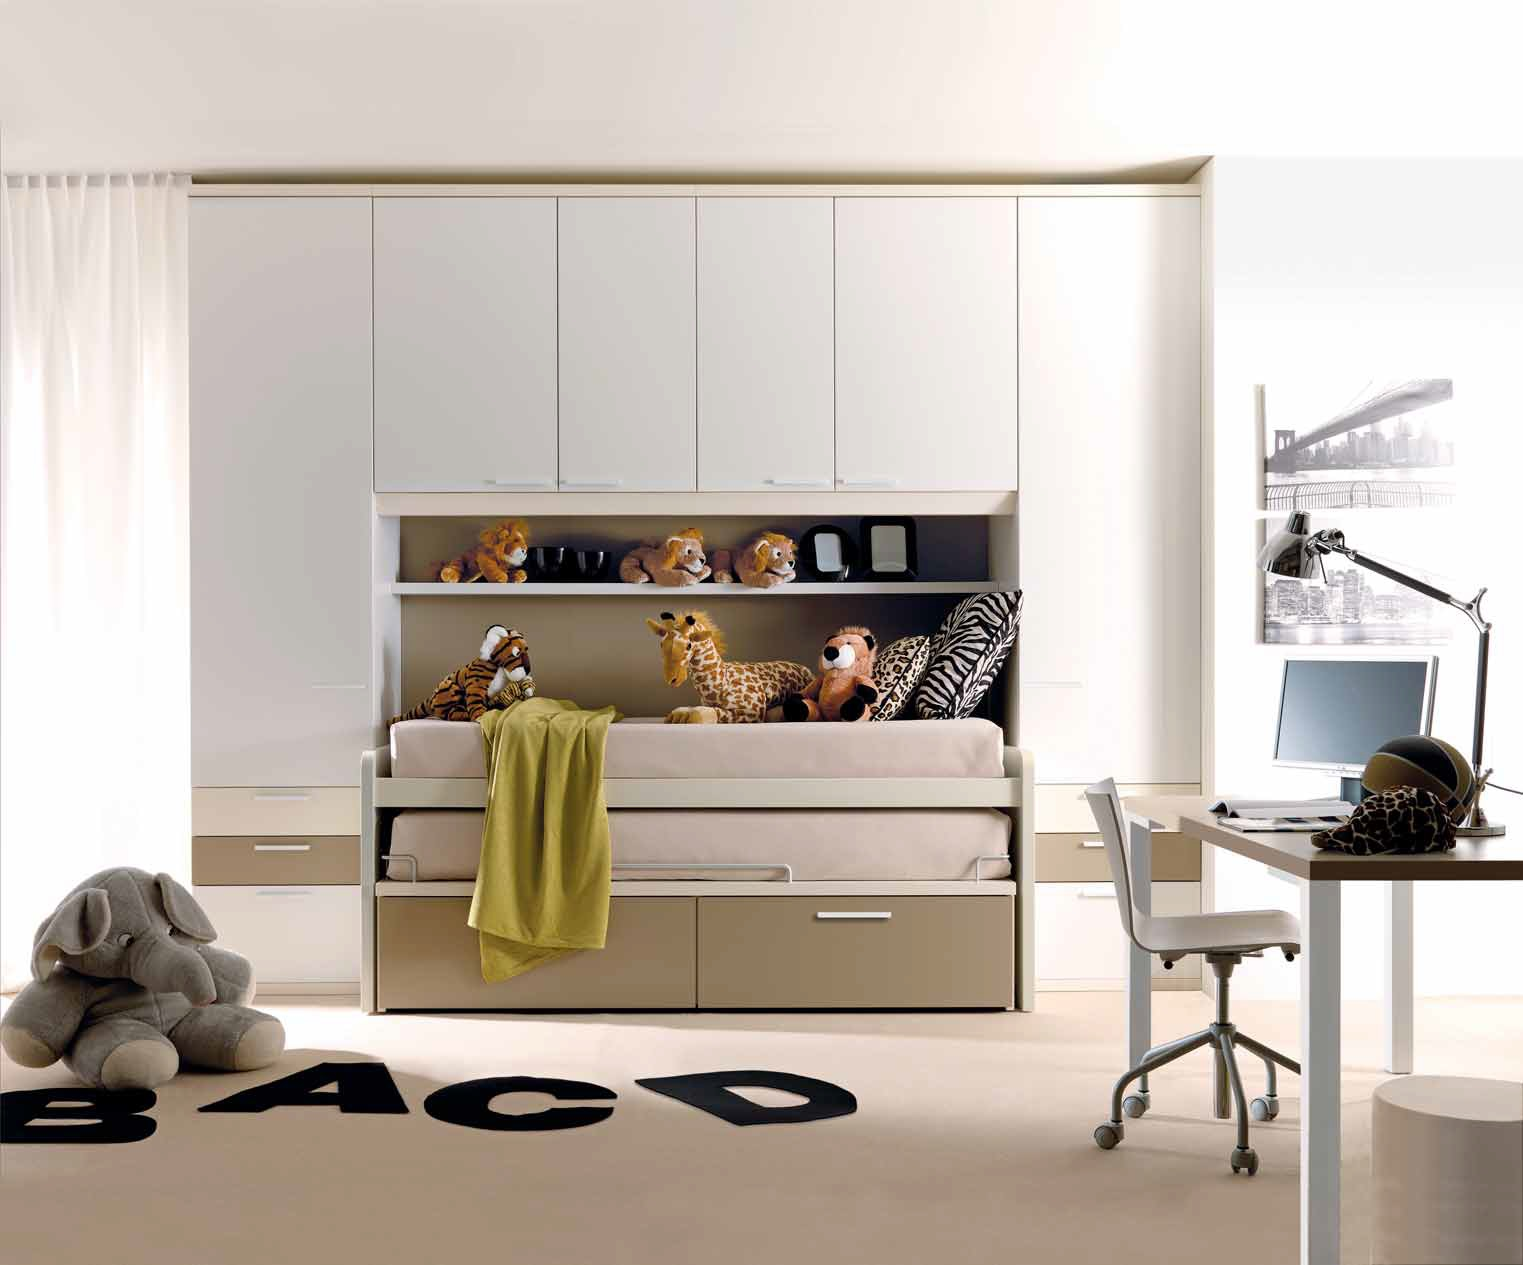 Ikea interni cabine armadio for Misure scrivania